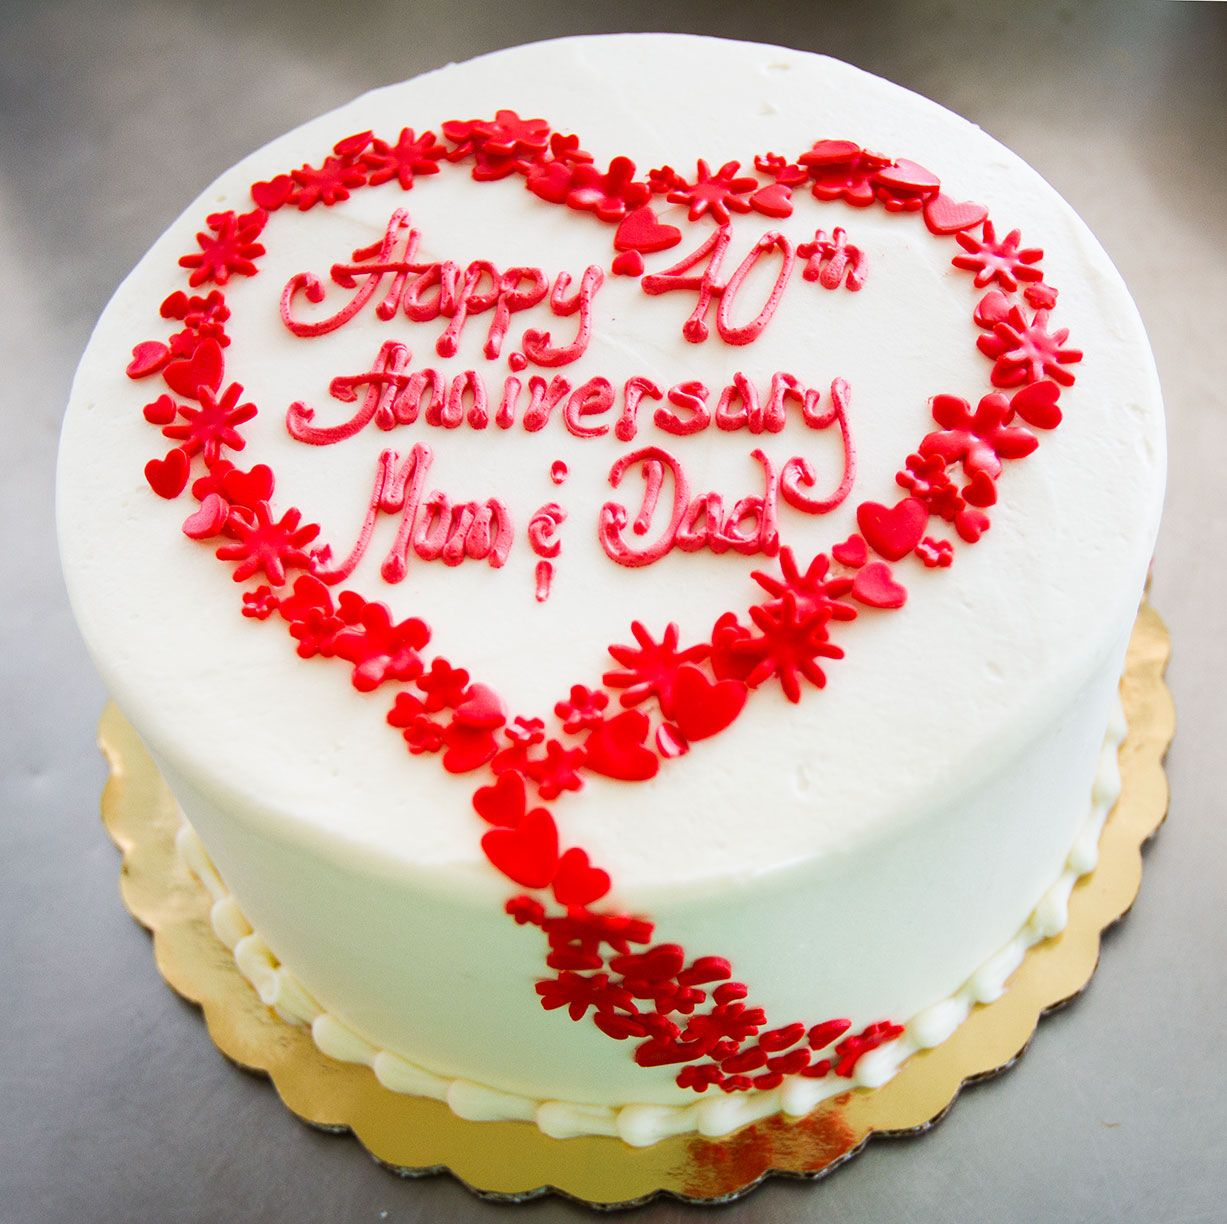 A Floral Heart Anniversary Cake Cake 001 With Images